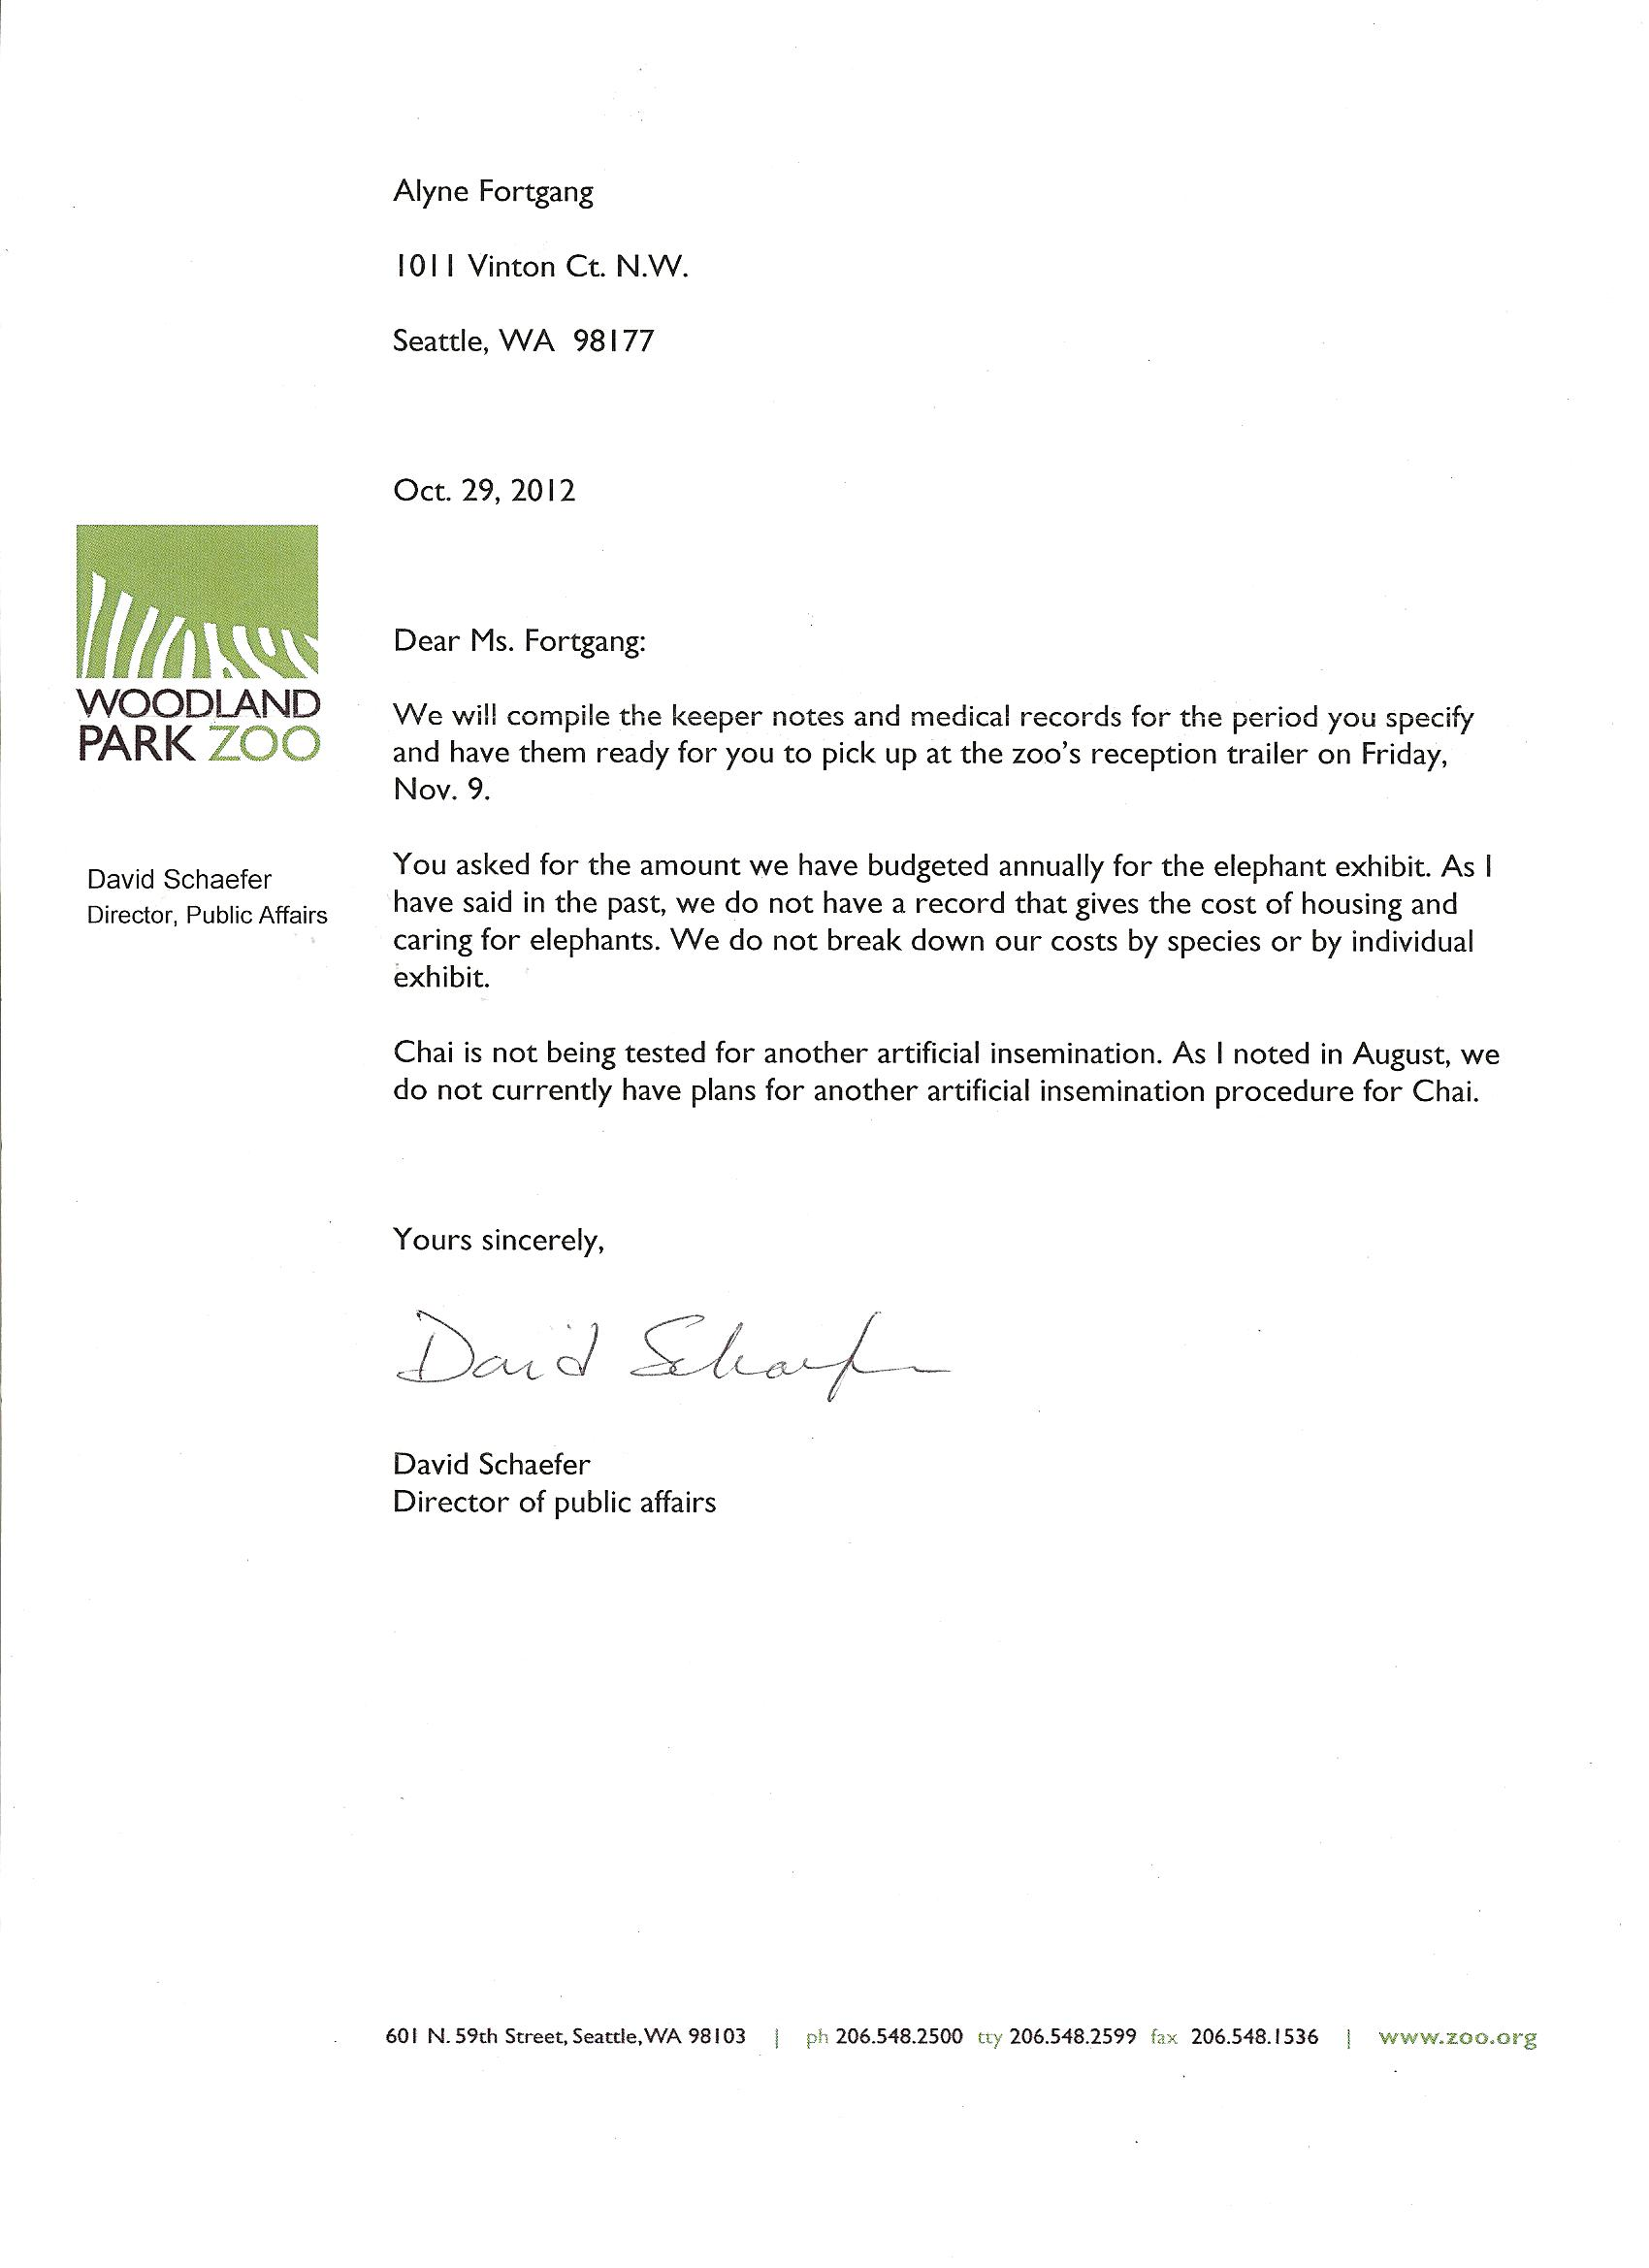 Friends of woodland park zoo elephants press release for Service pet letter